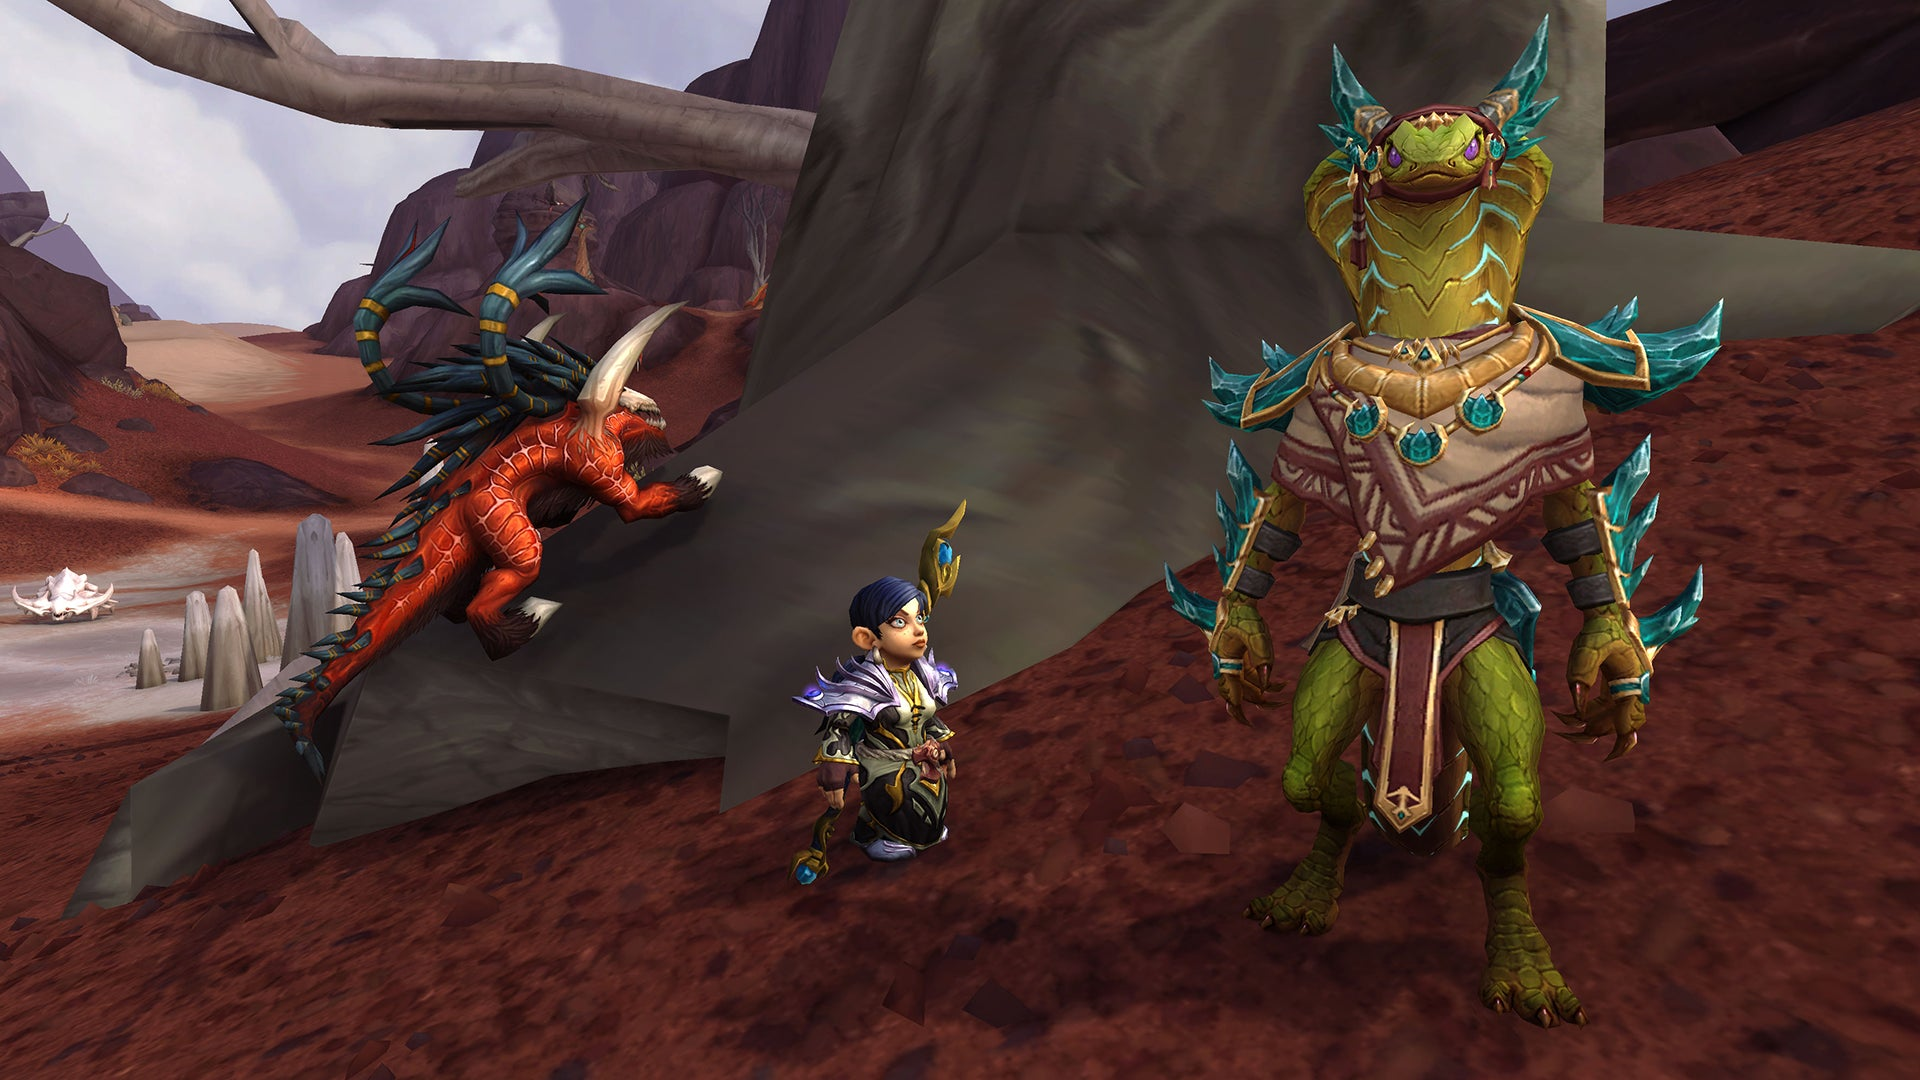 battle-for-azeroth blizzard feature impressions mmolog mmorpg tag-pc world-of-warcraft